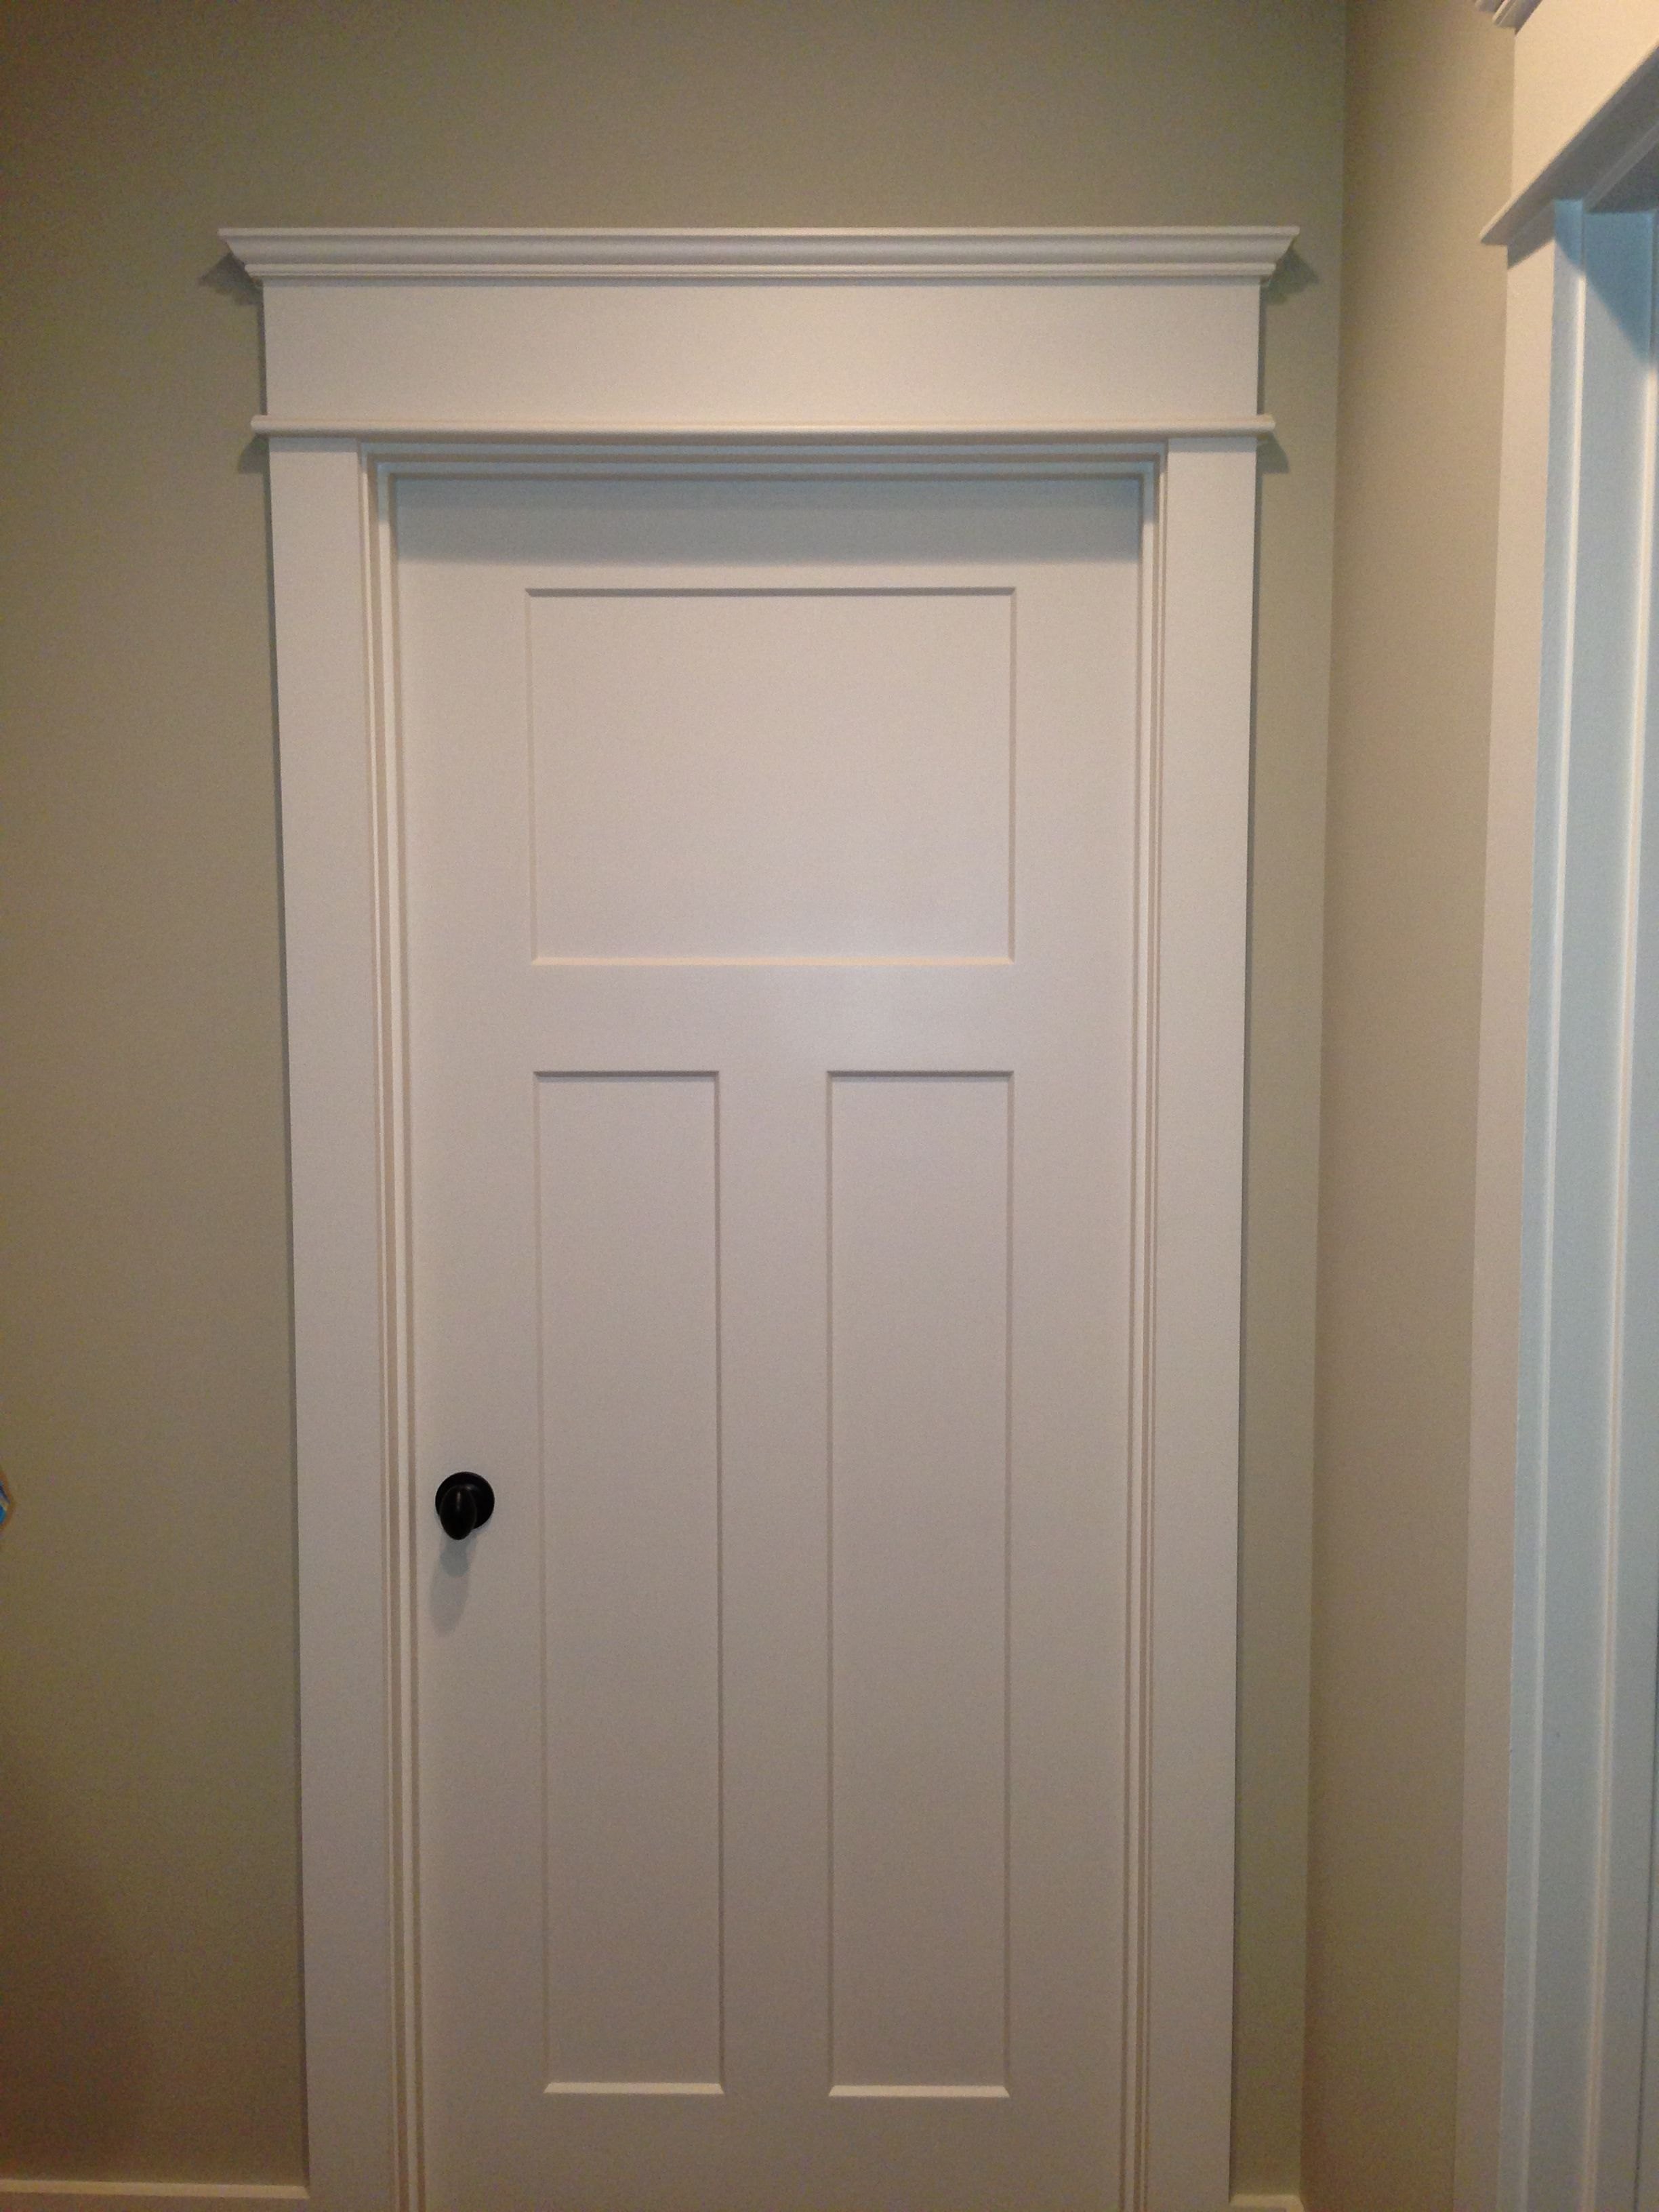 Interior doors trim MDF doors Pinterest Interior door trim